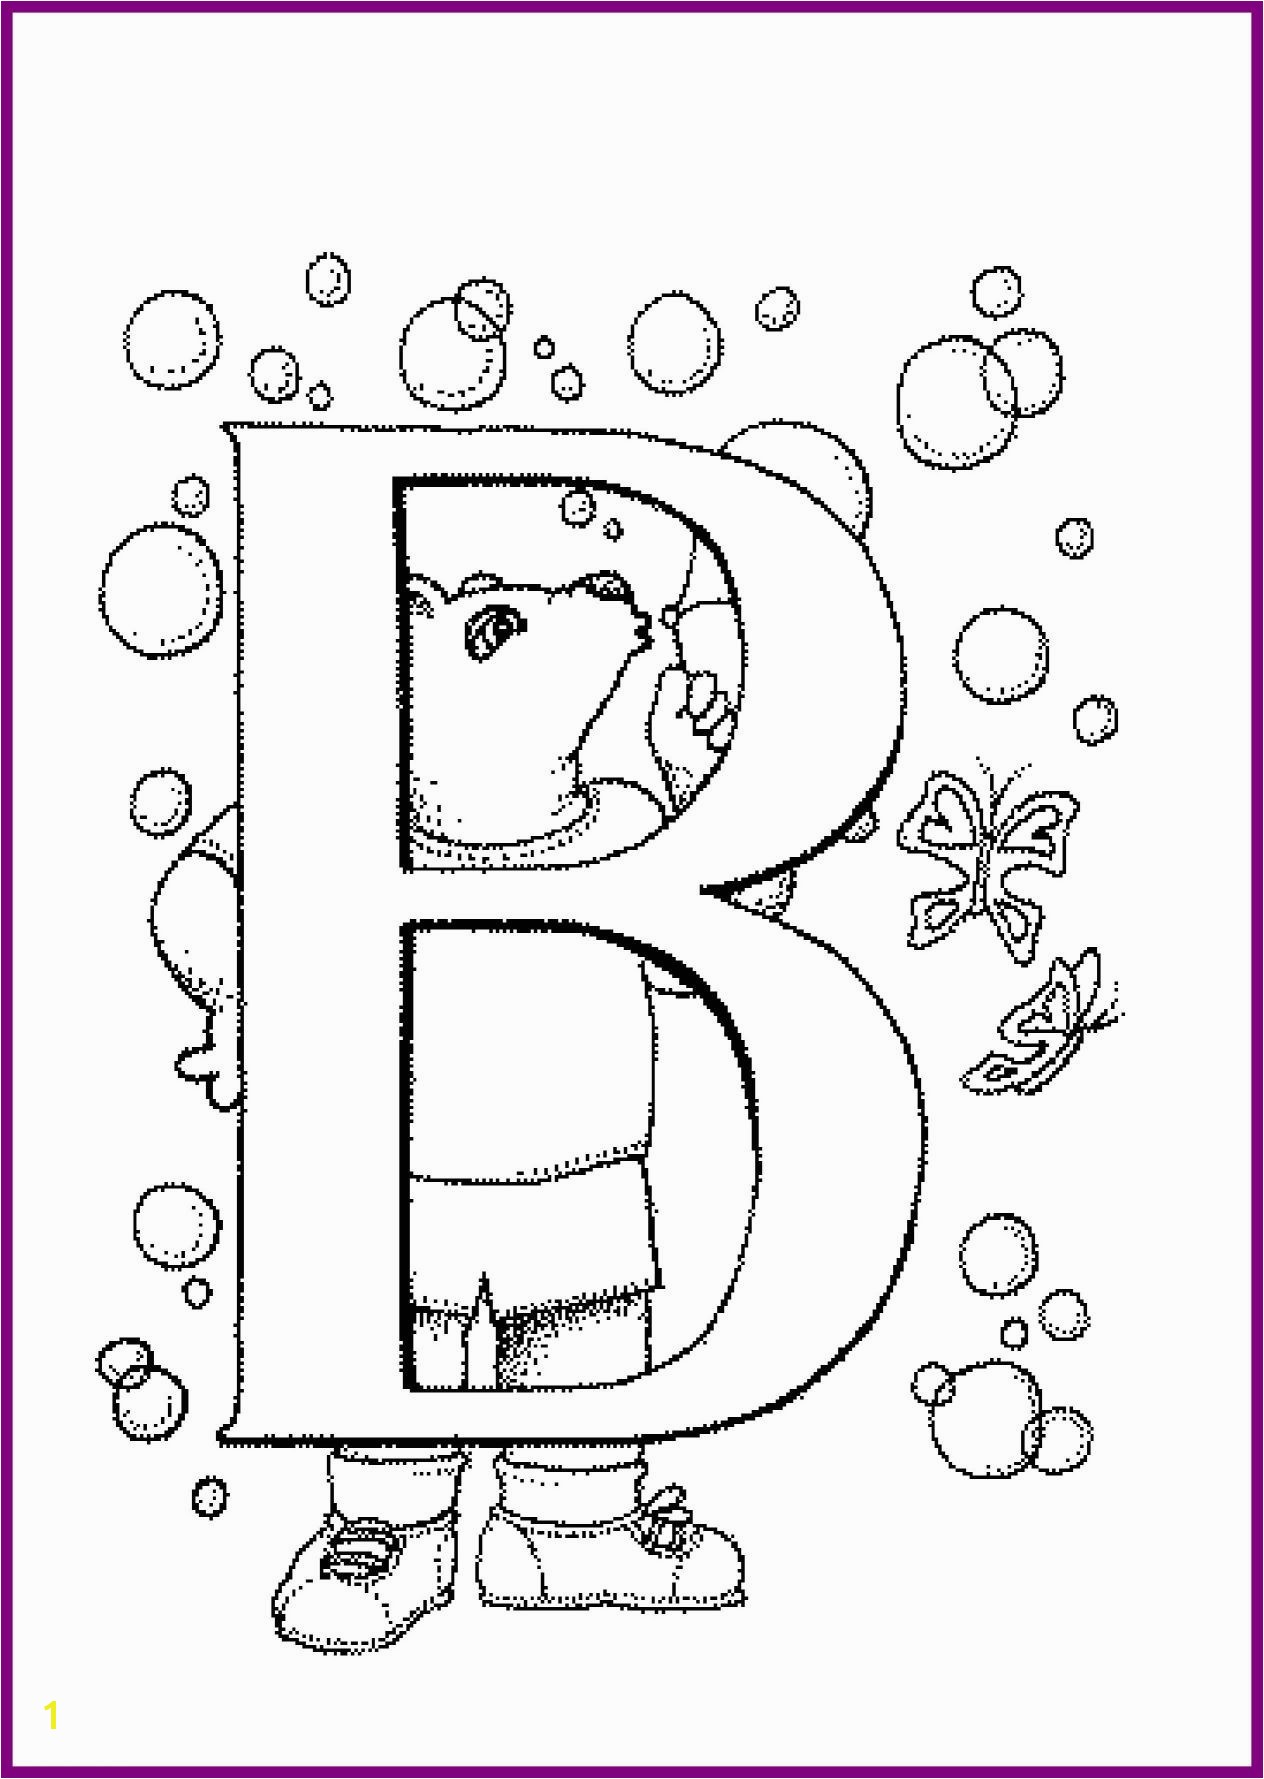 Cup Tea Coloring Page Unique Coloring Pages Icarly Coloring Pages 23 Elegant Best Od Dog